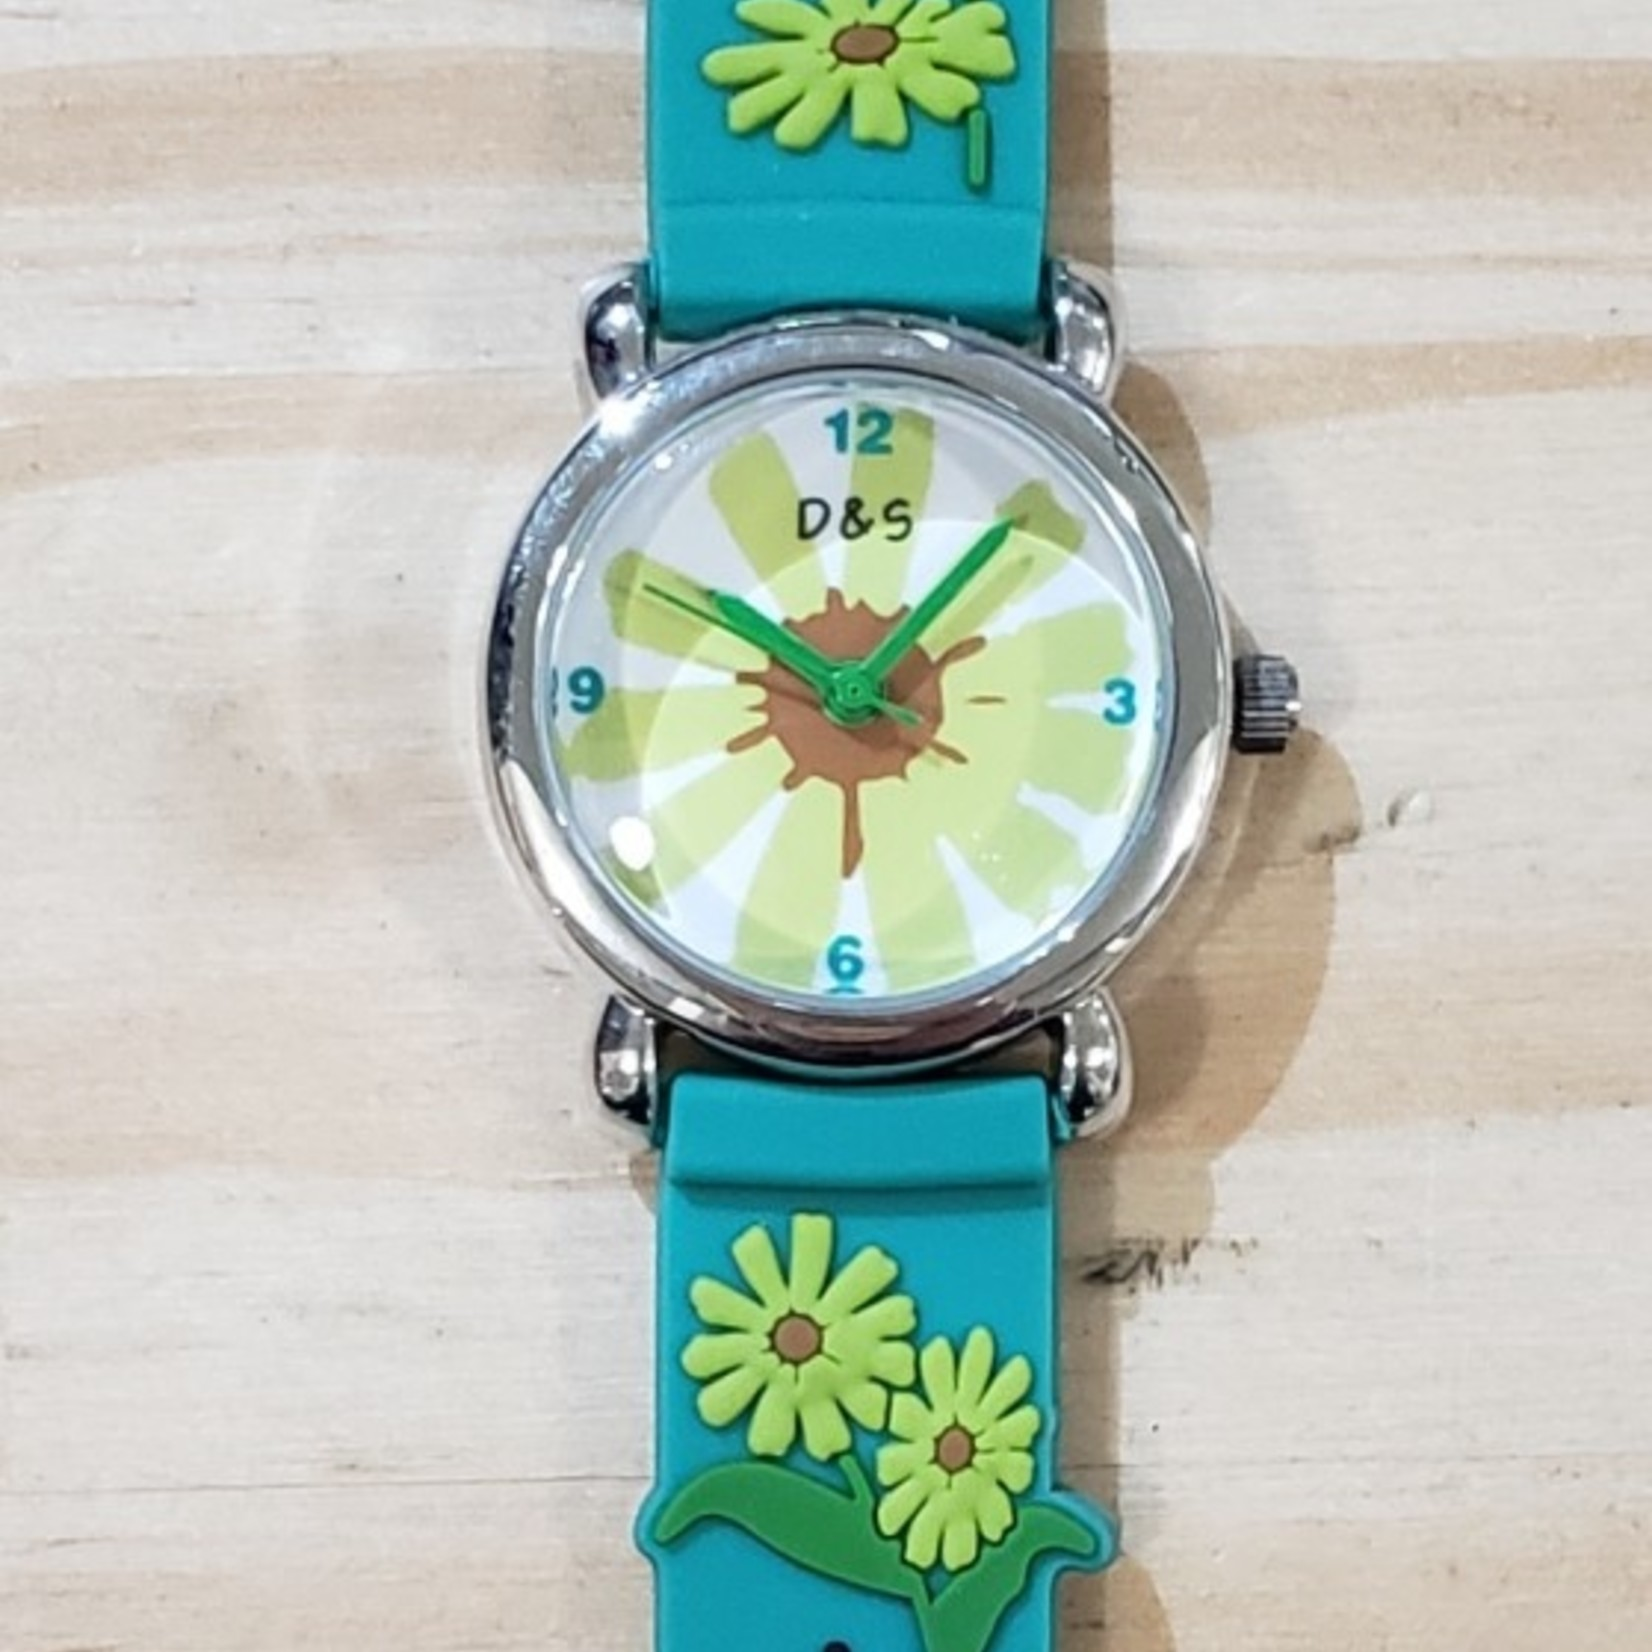 D&S Imports Watch - Sunflowers & Lady Bugs